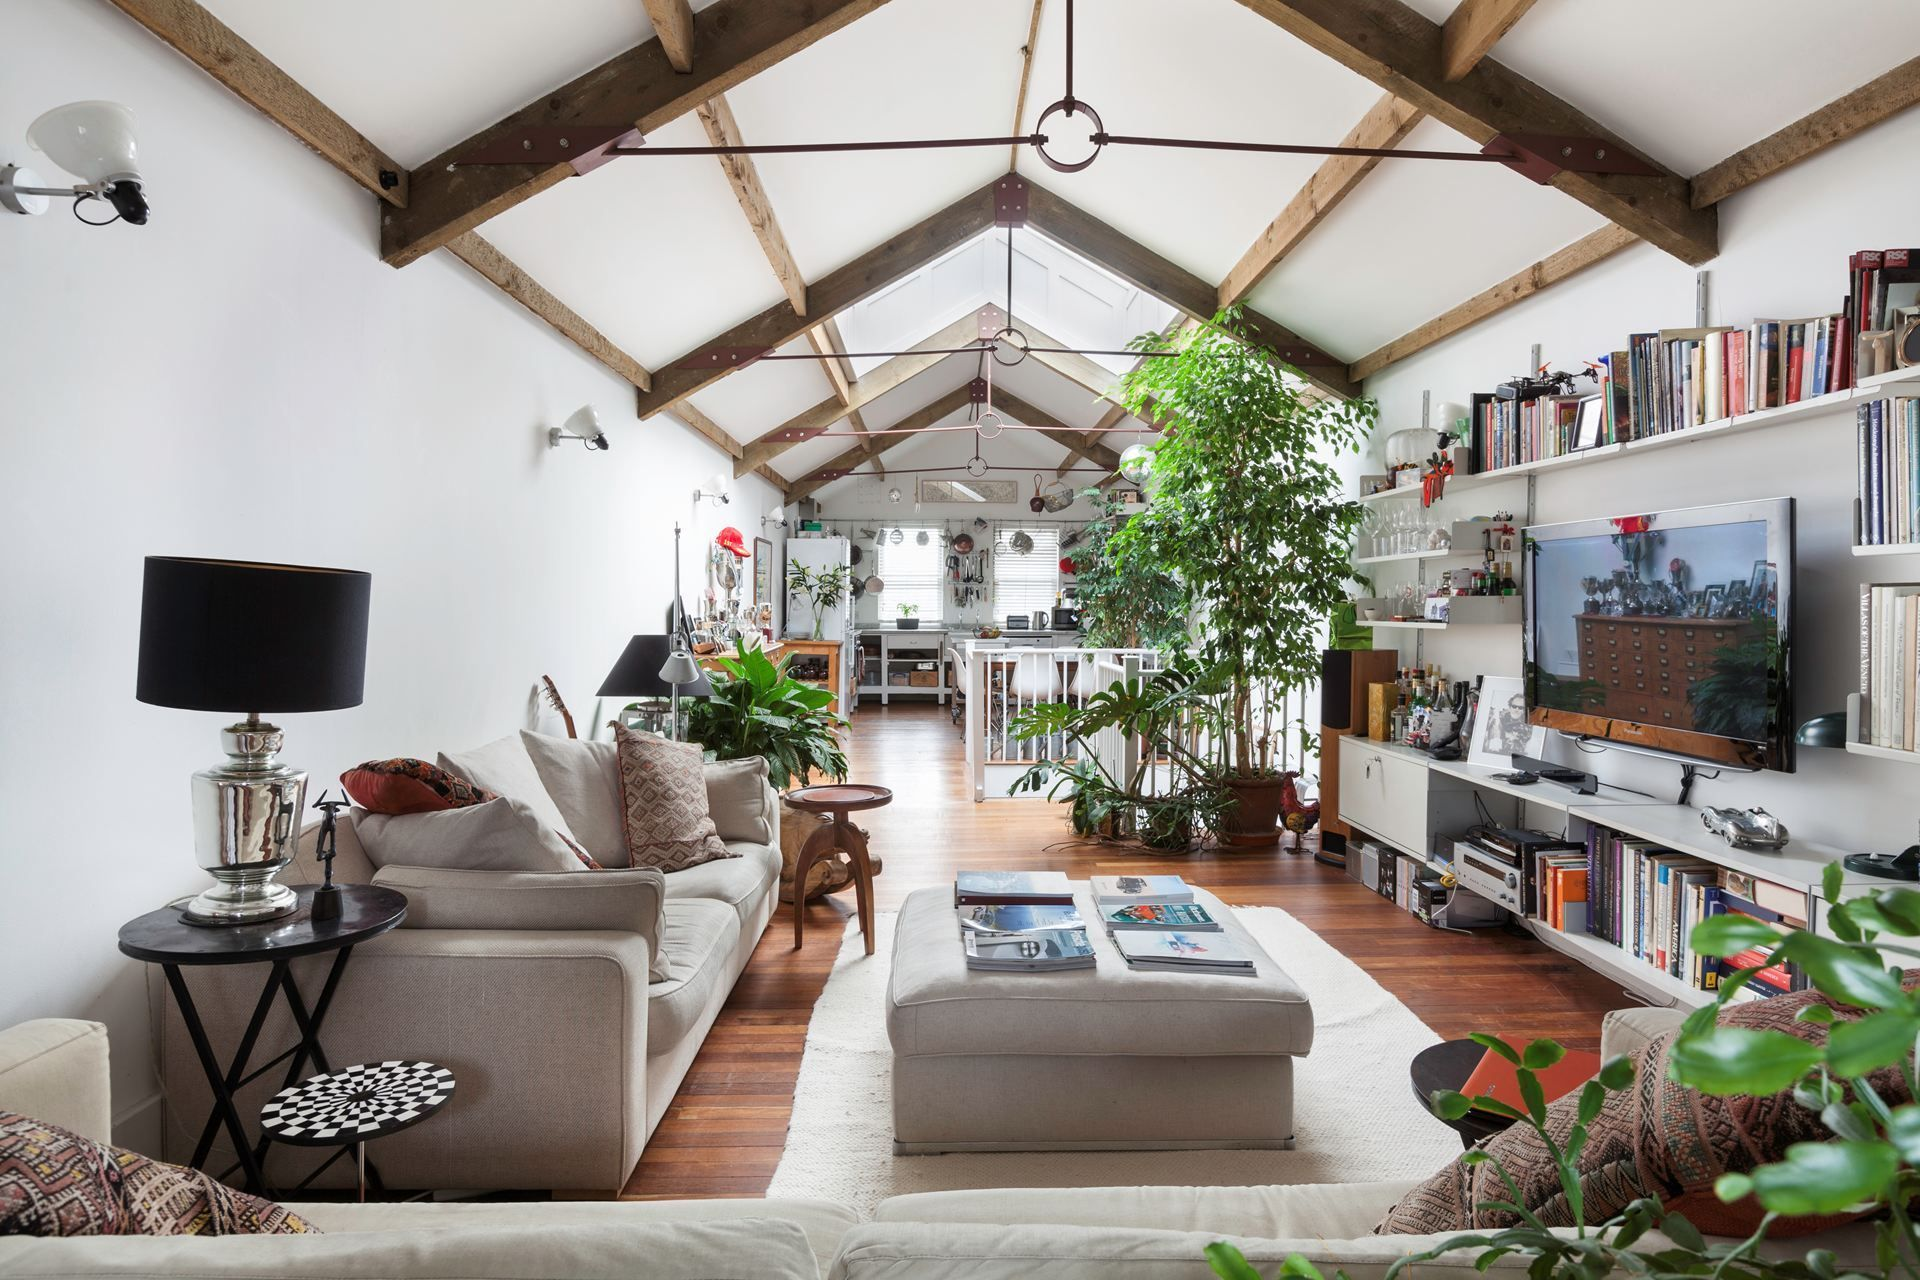 An incredible and rare two-bedroom maisonette featuring a vast warehouse-style reception space, complete with vaulted ceilings and beautiful exposed wood beams.